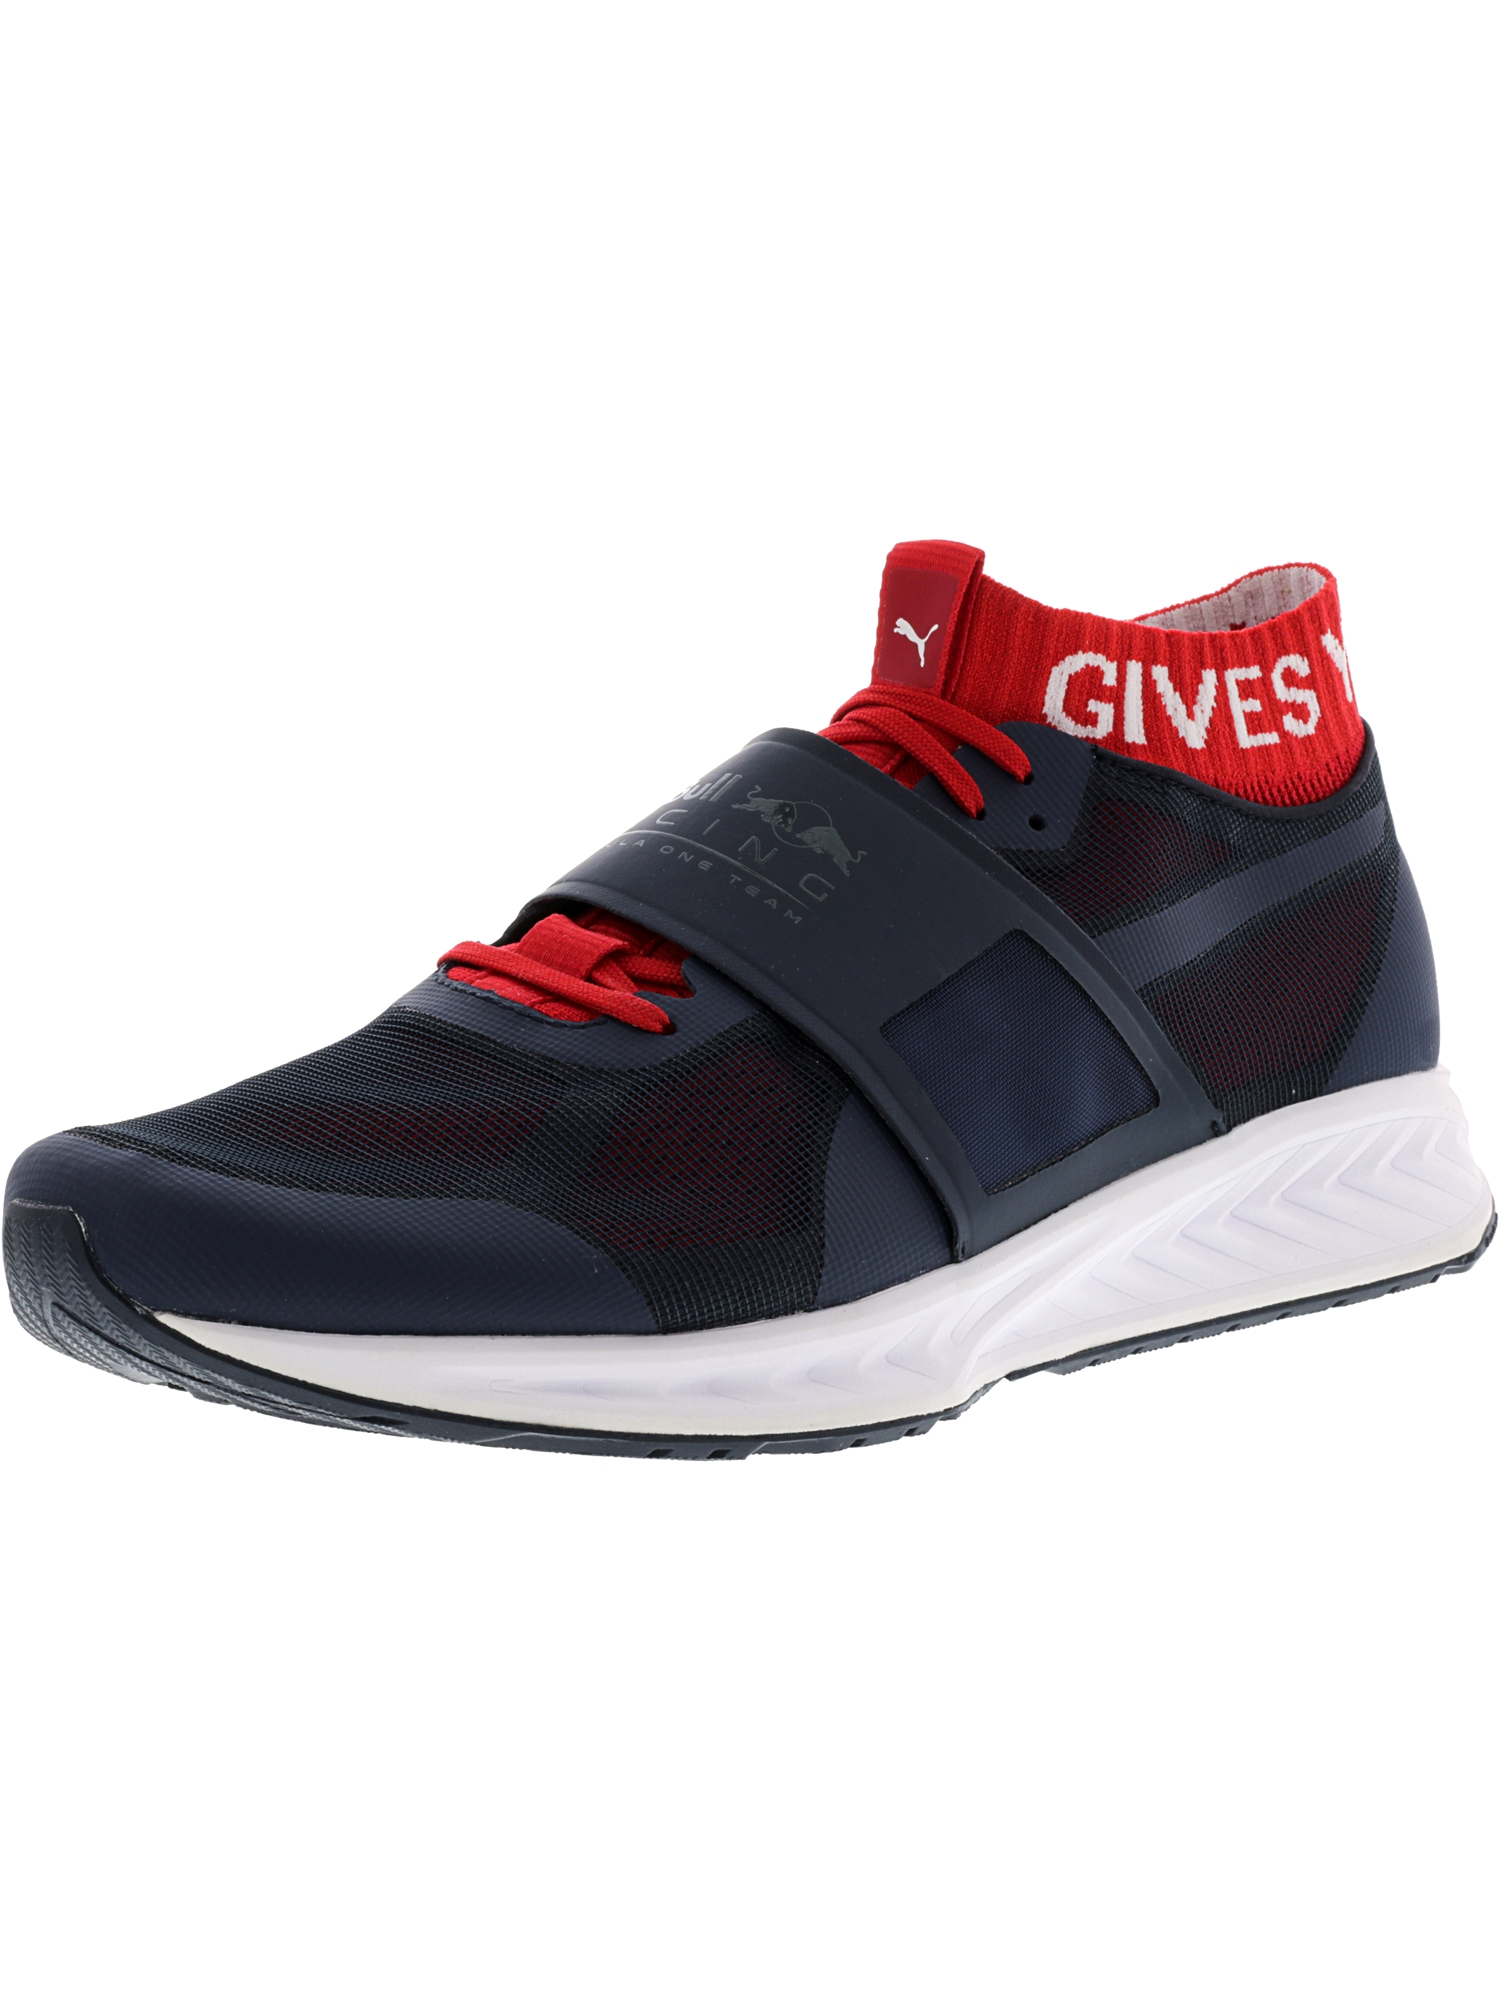 Puma Men's Red Bull Racing Mechs Ignite V3 Total Eclipse / Chinese White Ankle-High Training Shoes - 11M